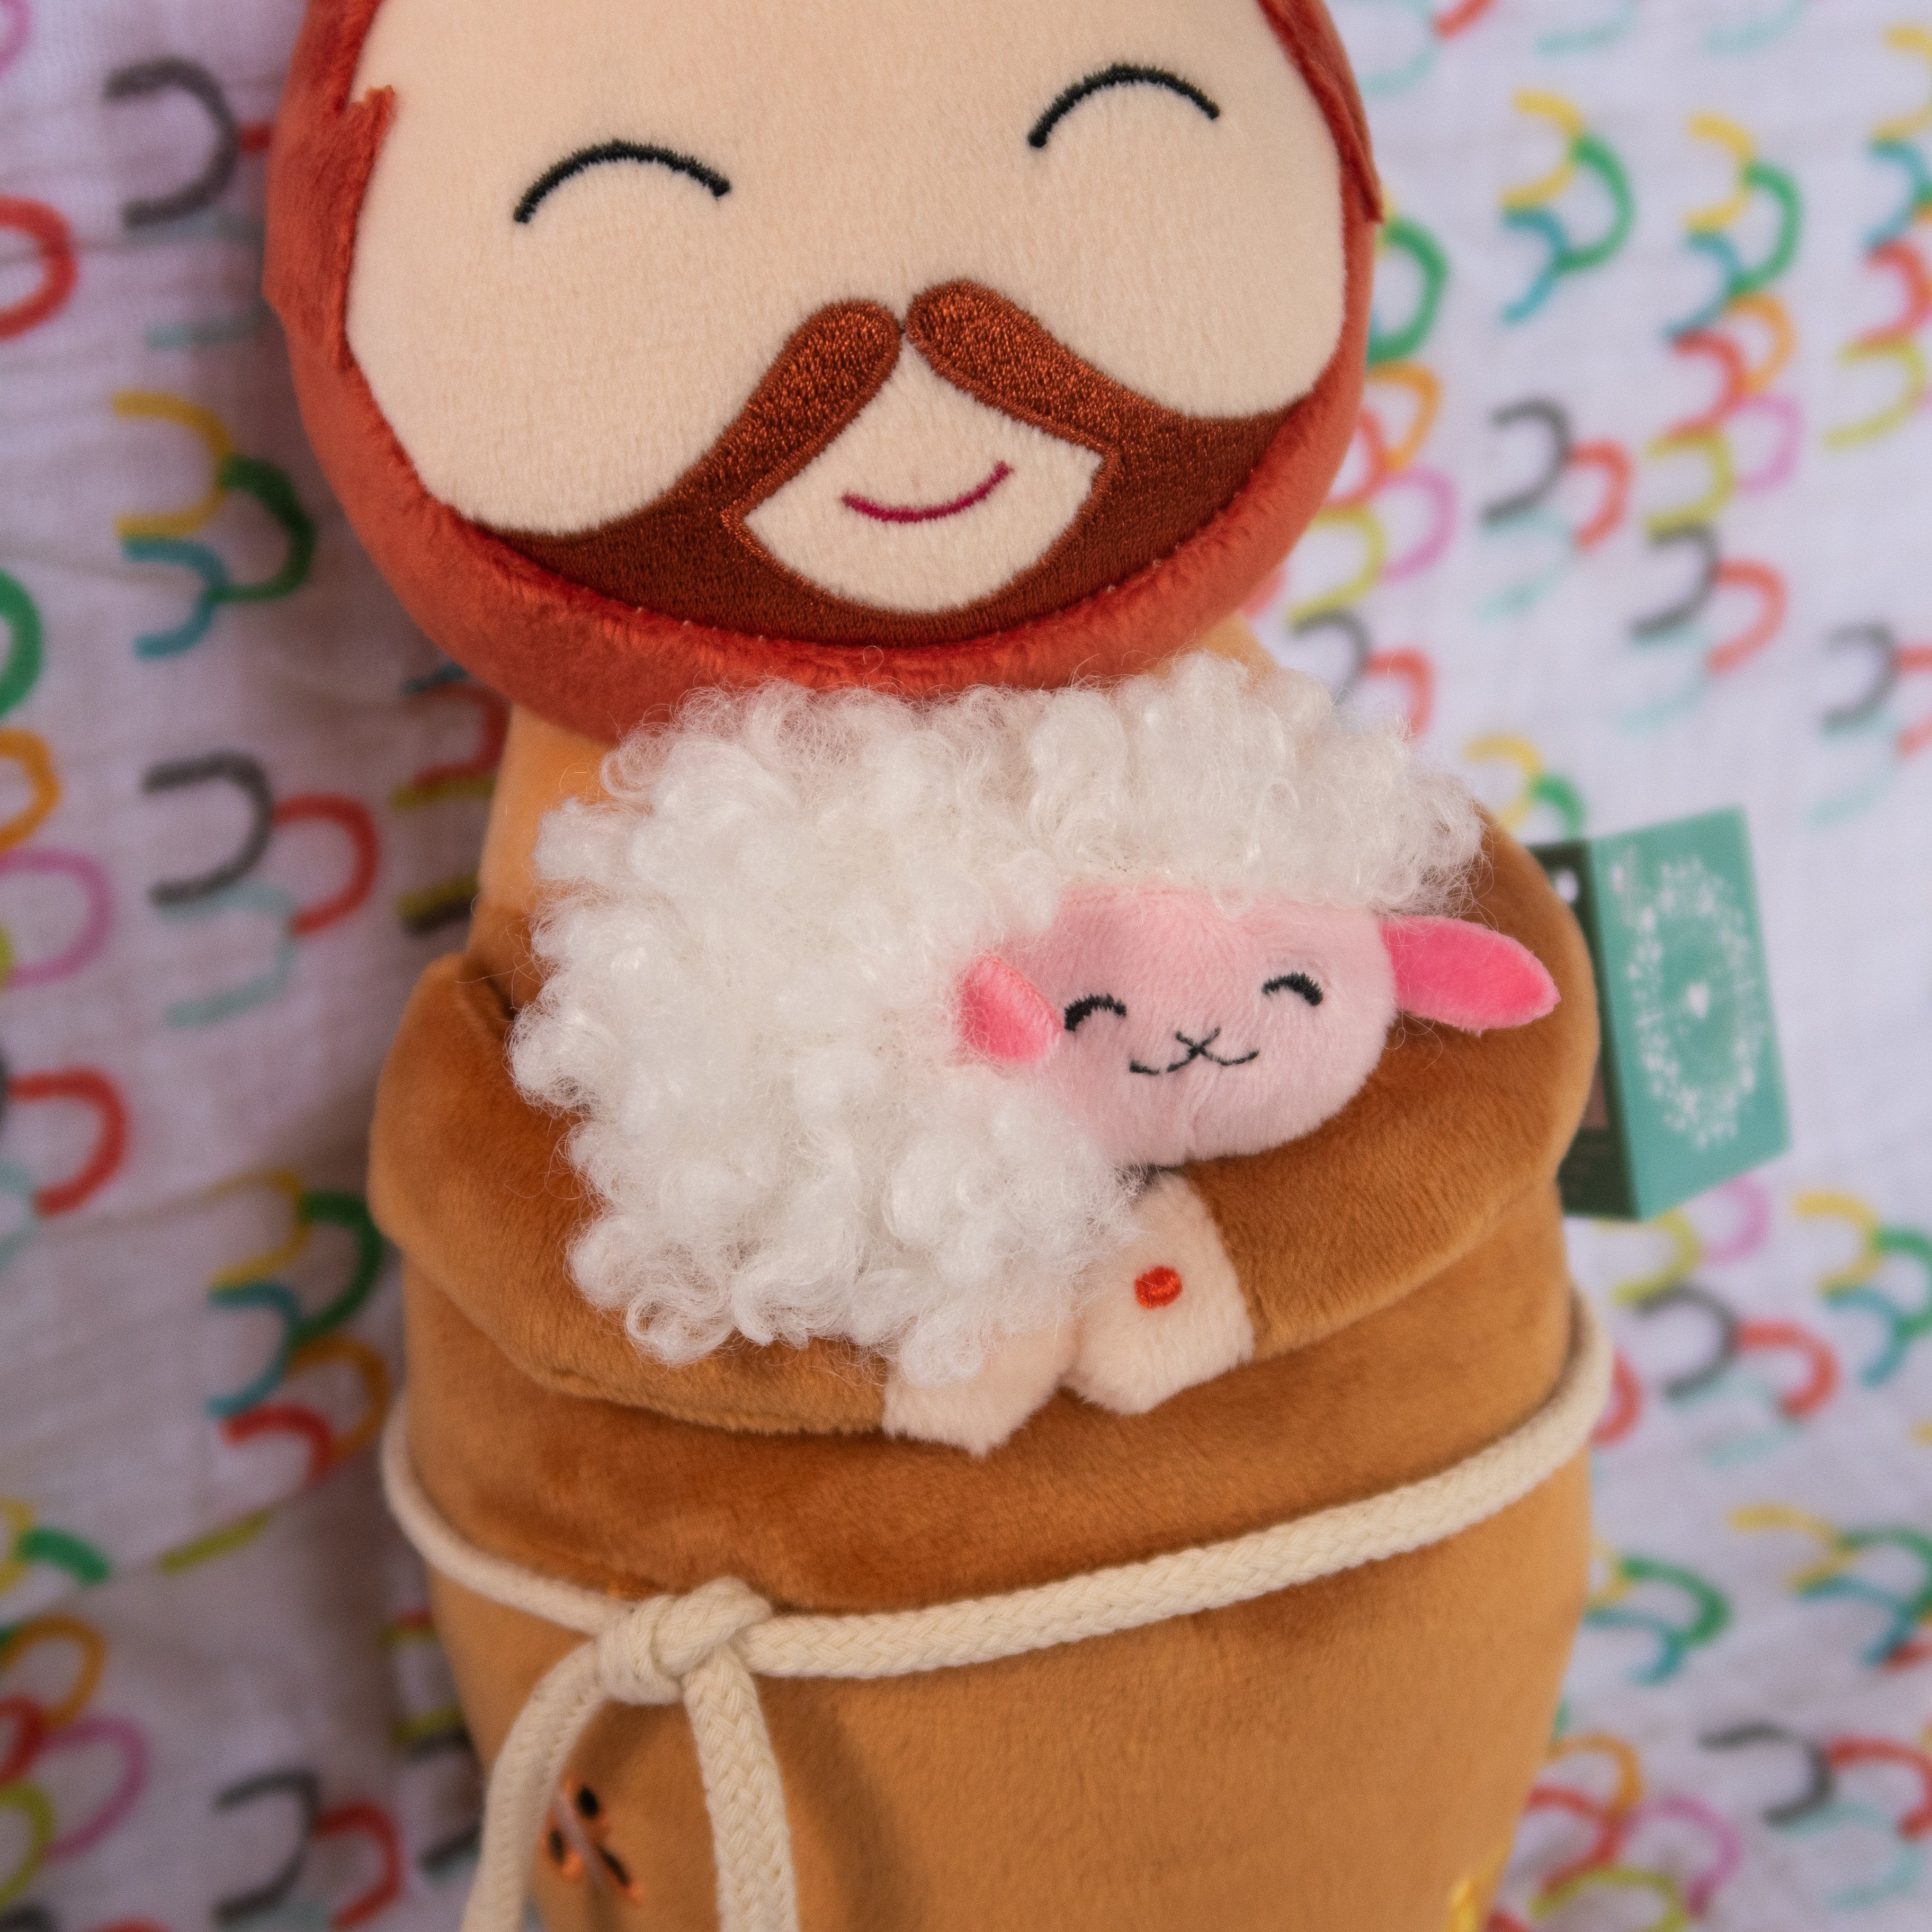 St. Francis of Assisi Plush by Shining Light Dolls